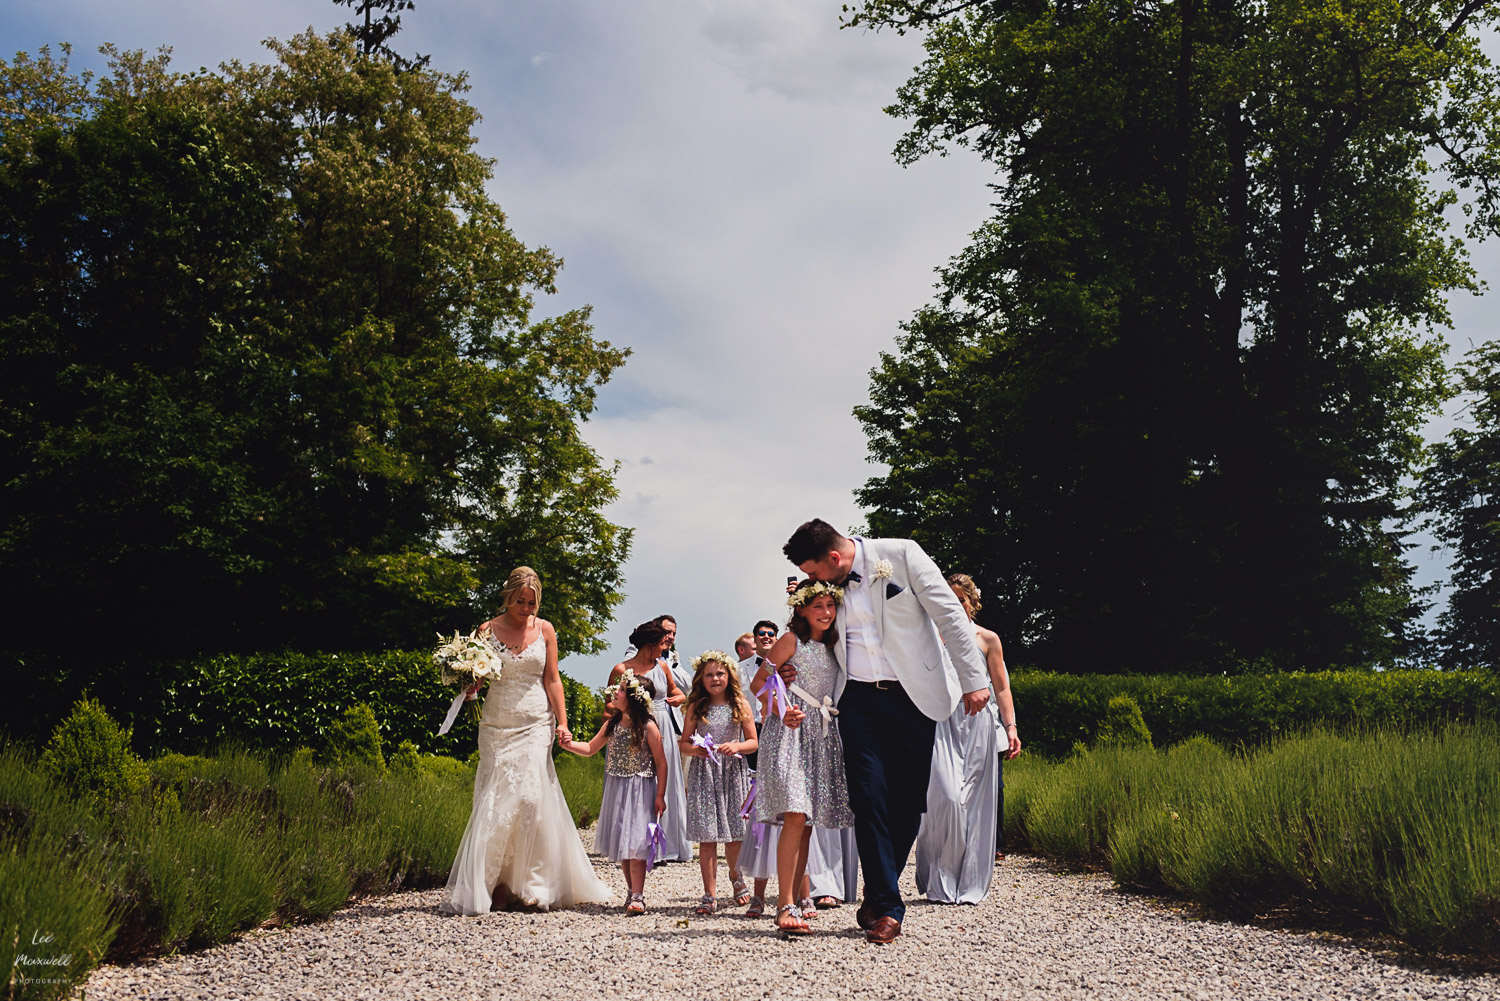 Walking bridal party at Chateau